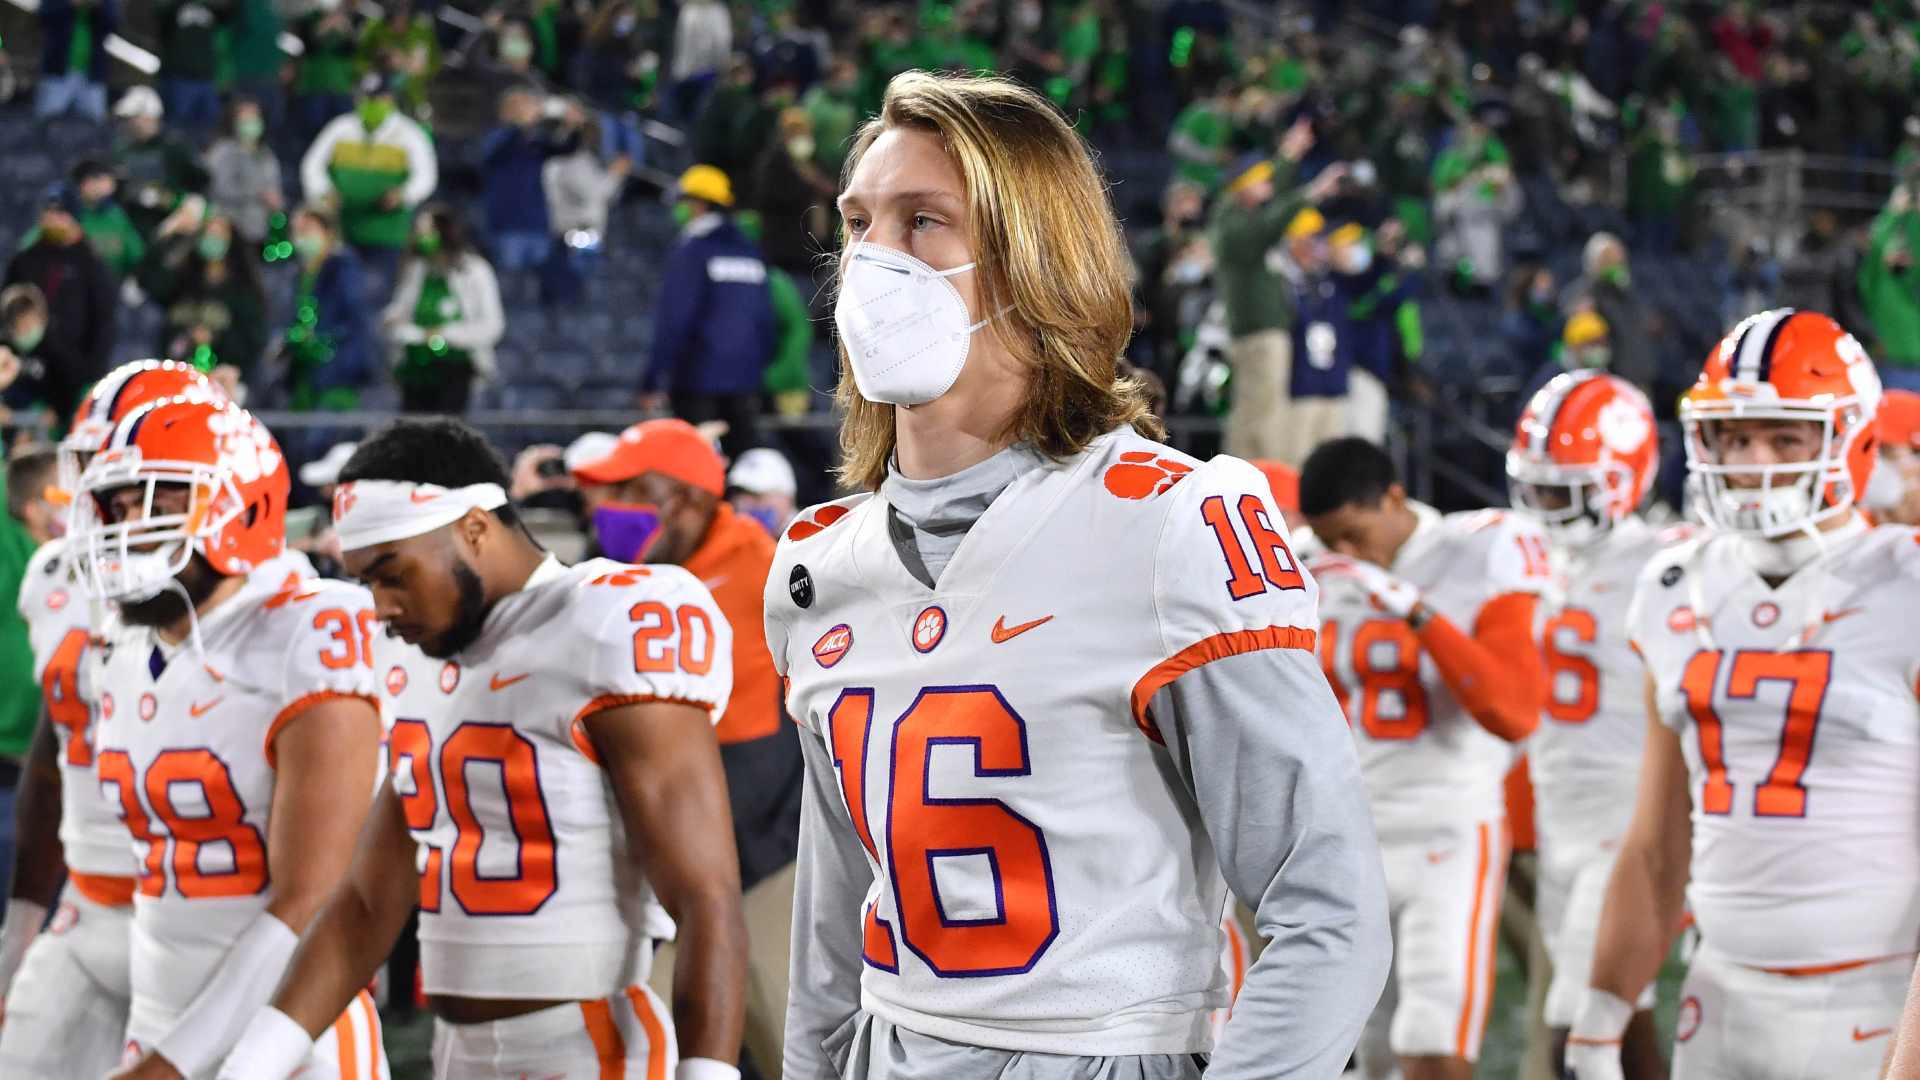 Notre Dame vs. Clemson odds, prediction, betting trends for 2020 ACC championship